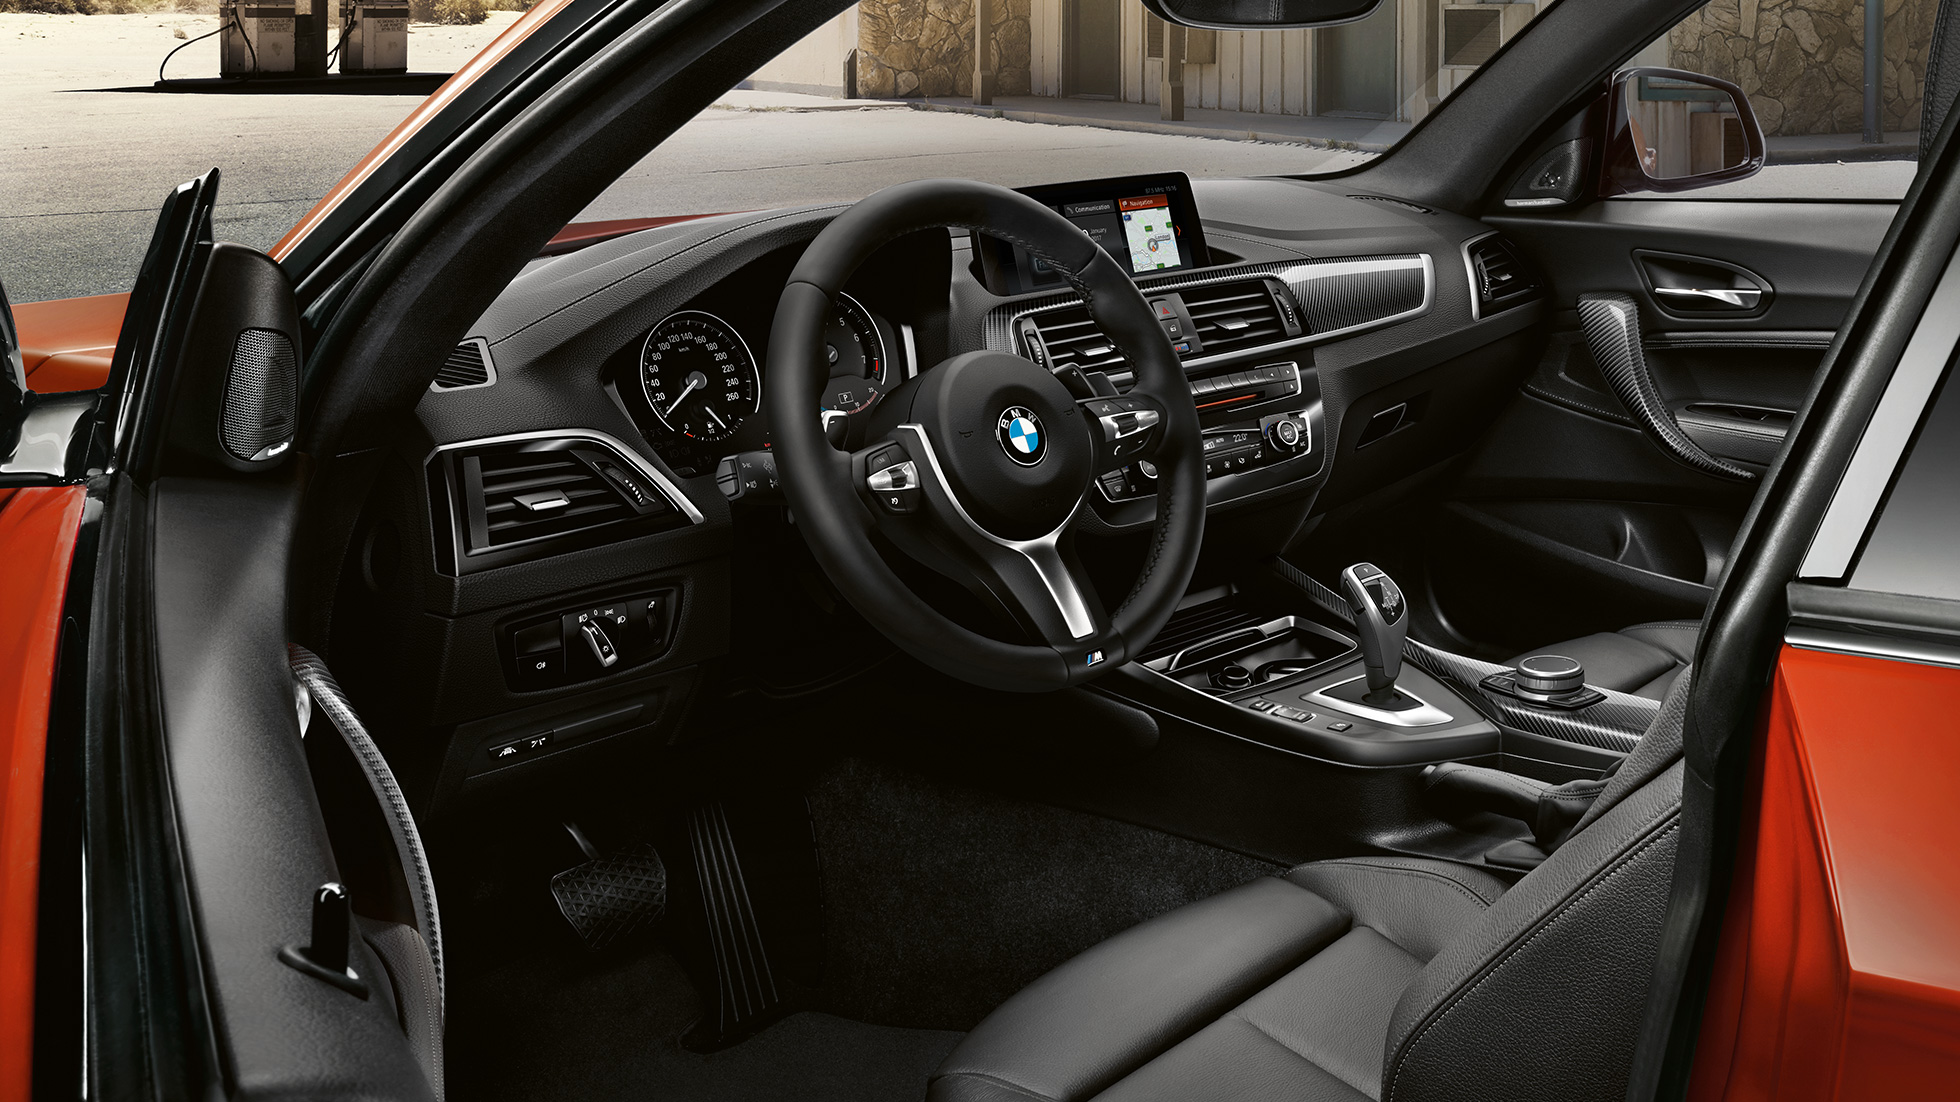 BMW 2er Coupé, Cockpit